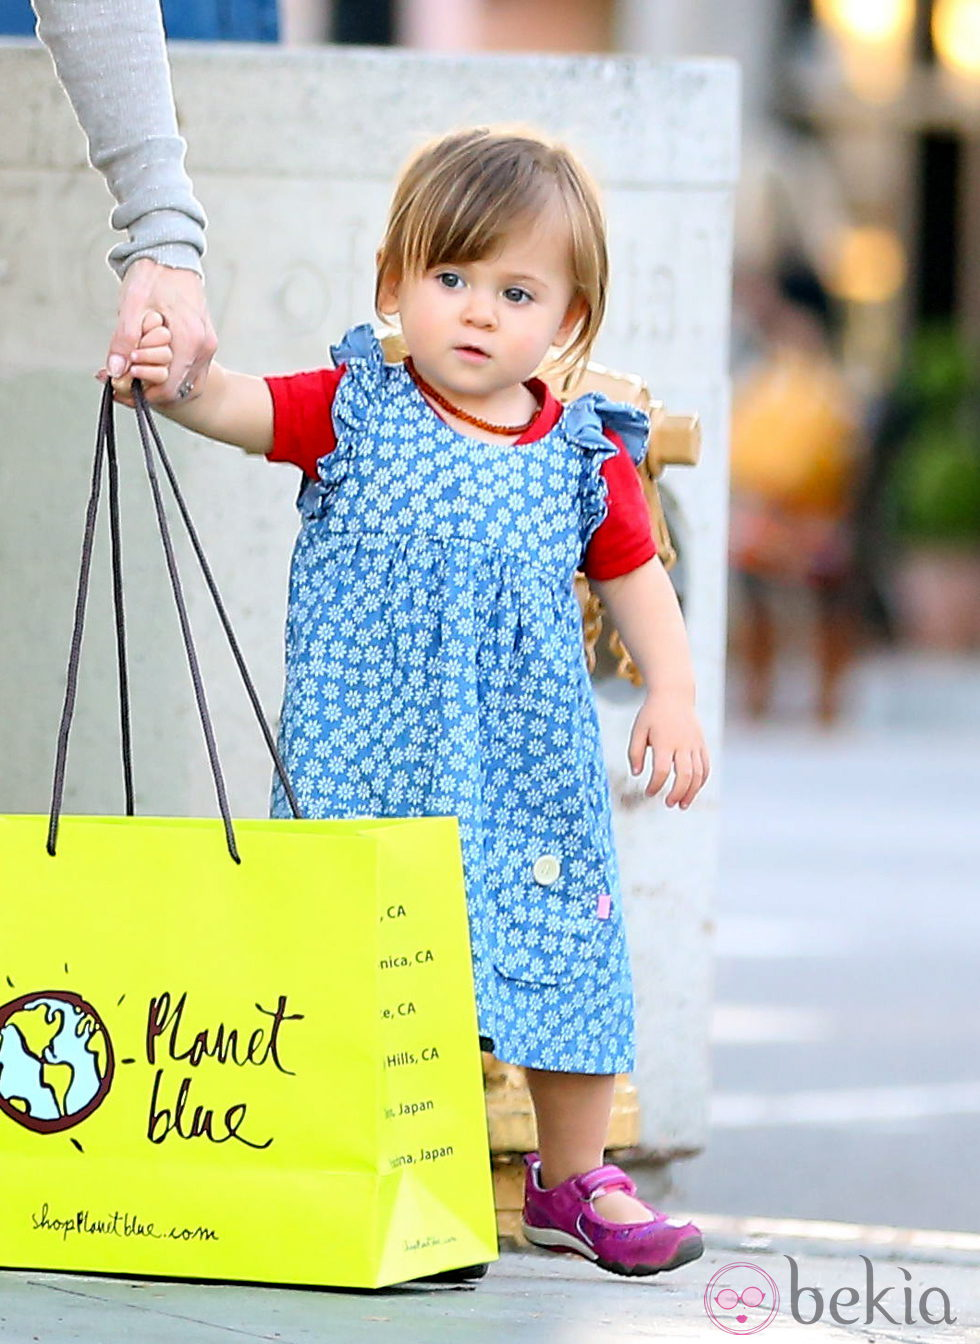 India Rose Hemsworth de compras en Los Angeles